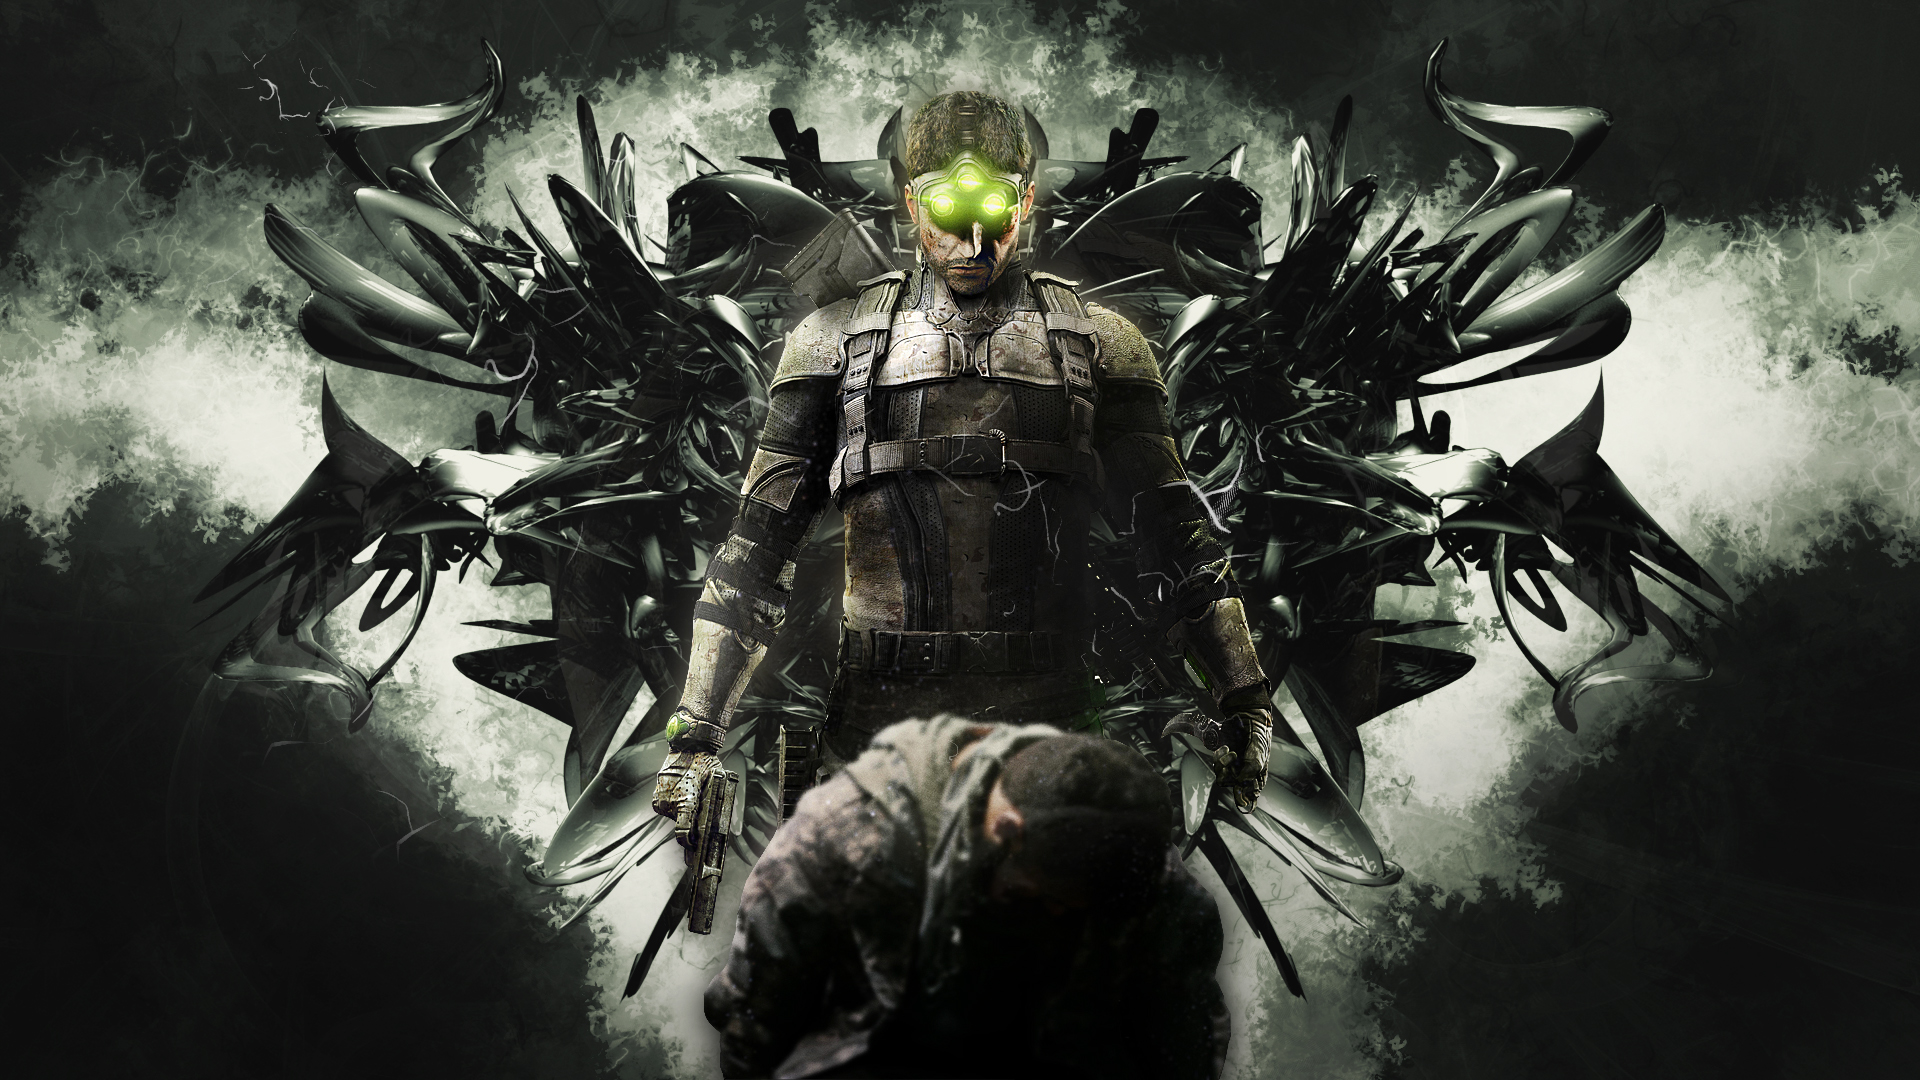 Splinter-Cell-Blacklist-Wallpaper-HD.jpg